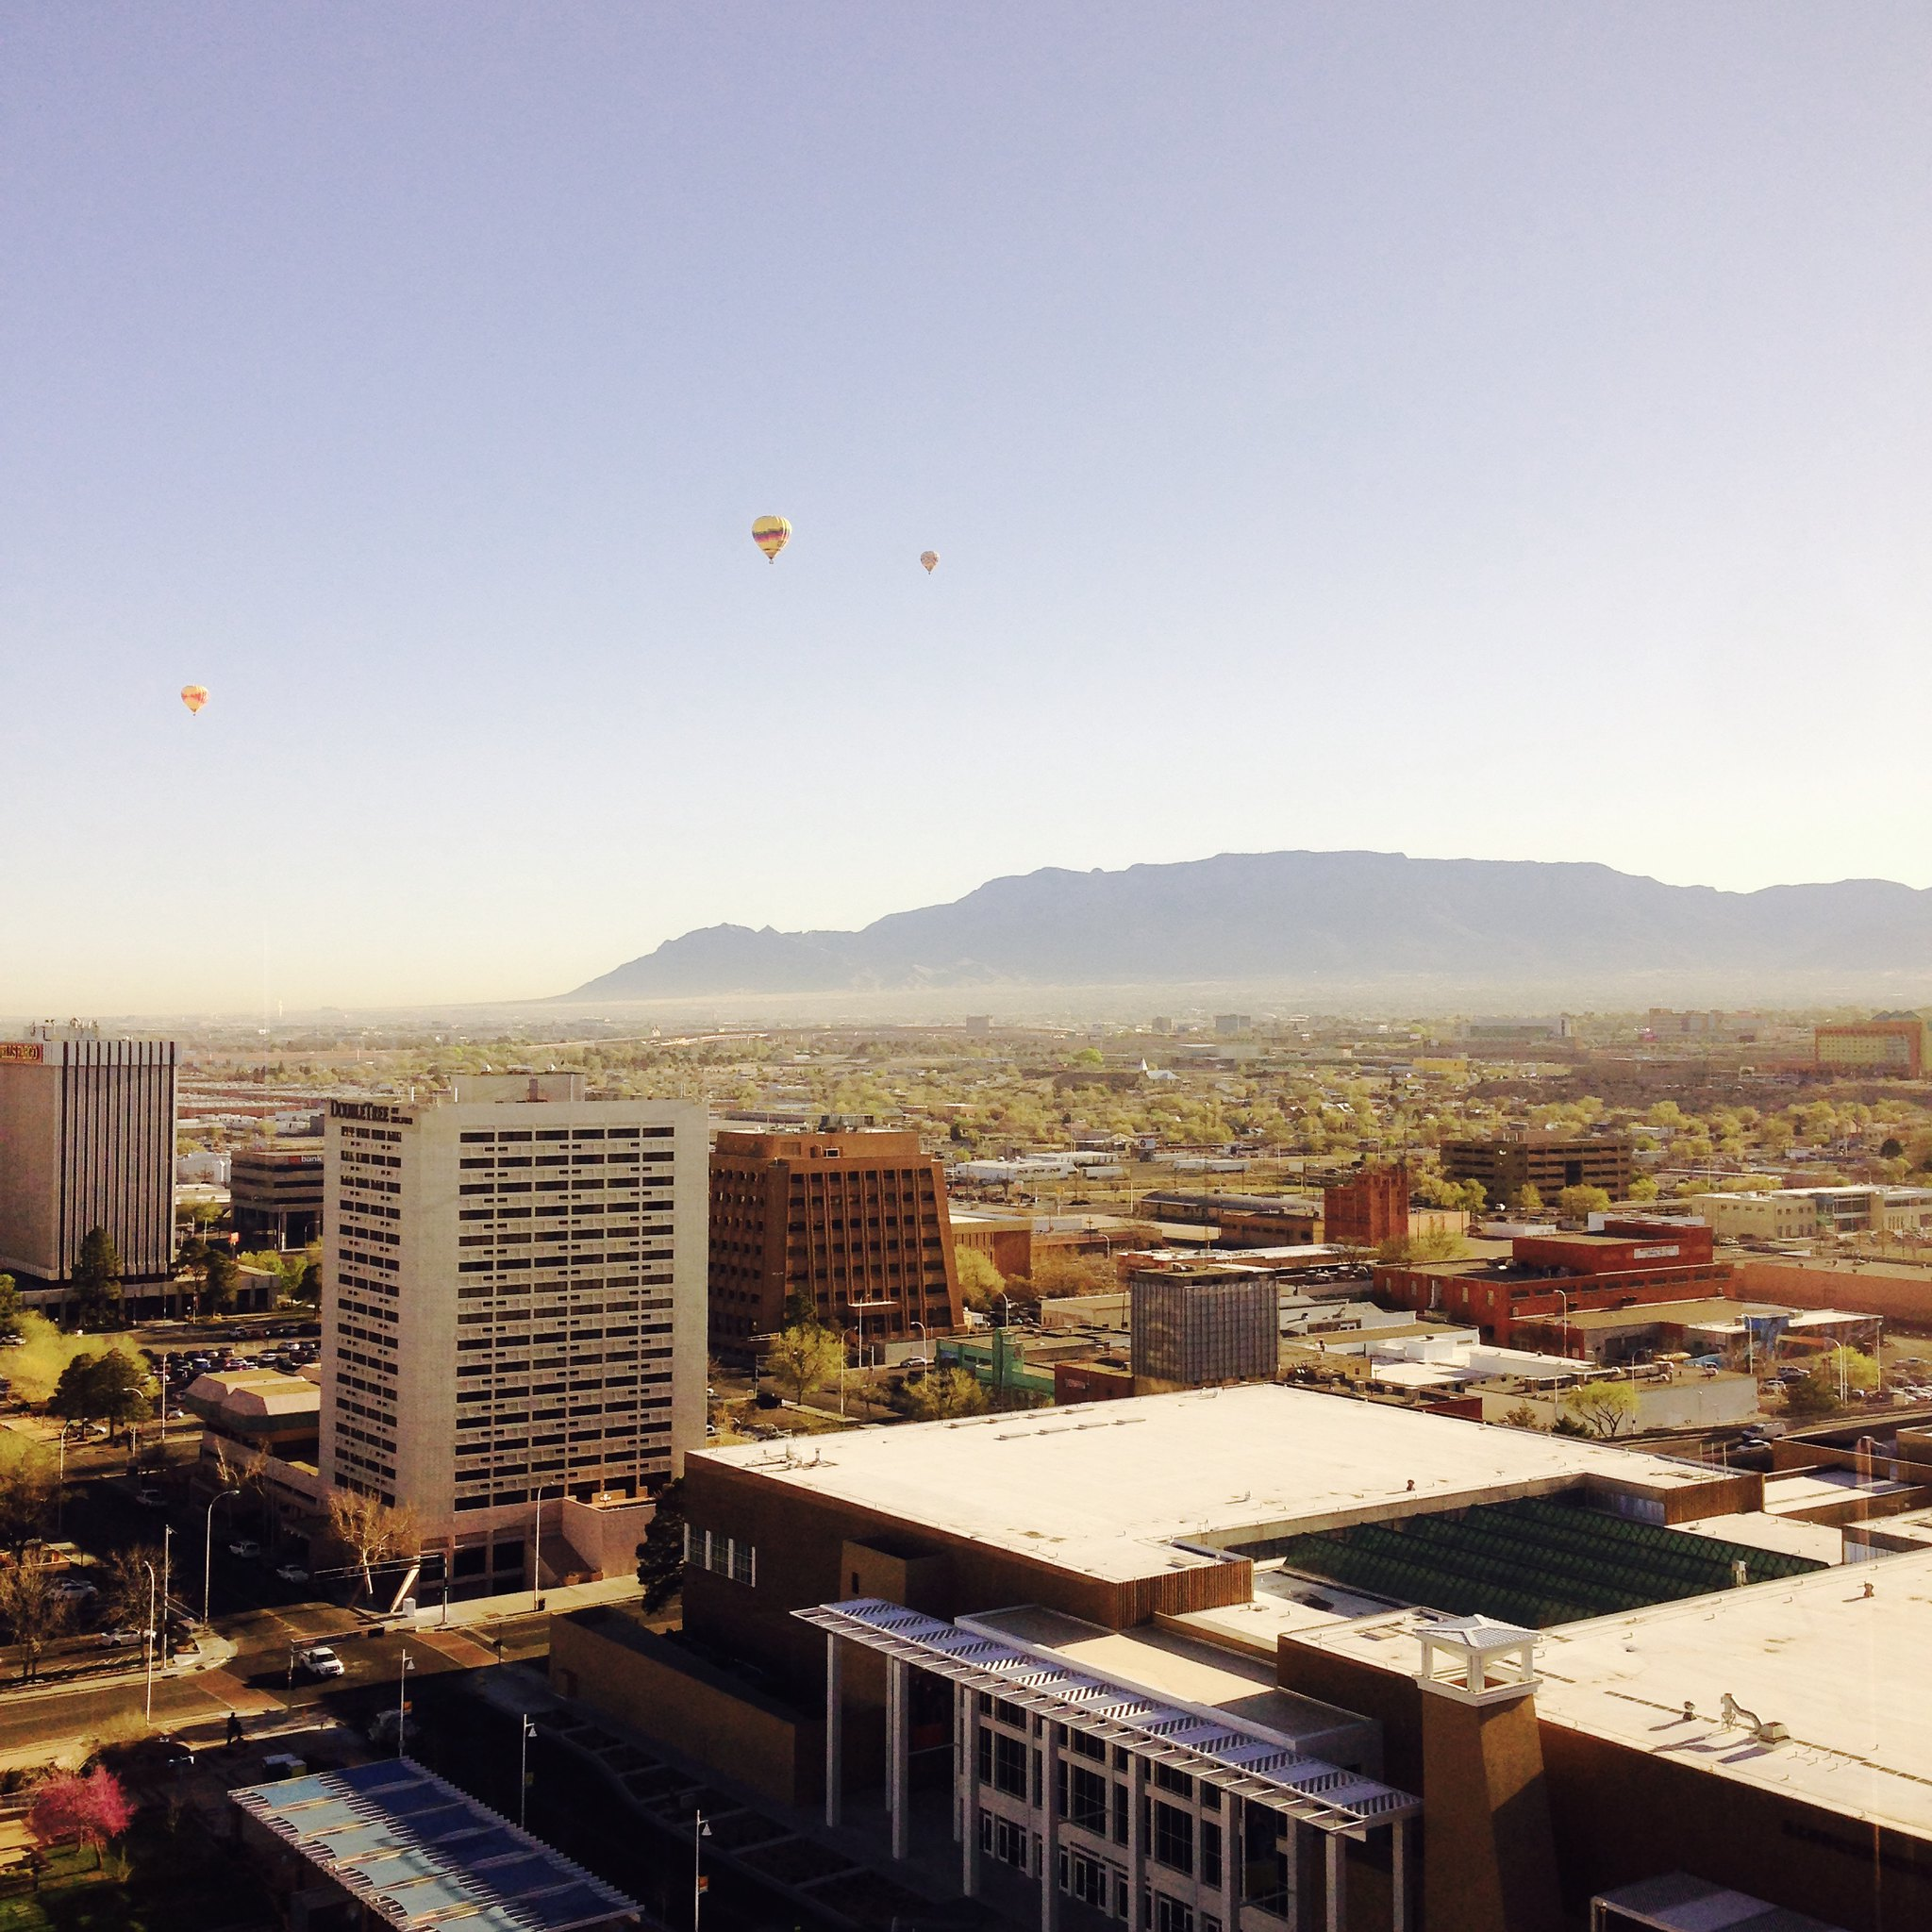 Morning view from Junior Suite #1909 @ Hyatt Regency Albuquerque